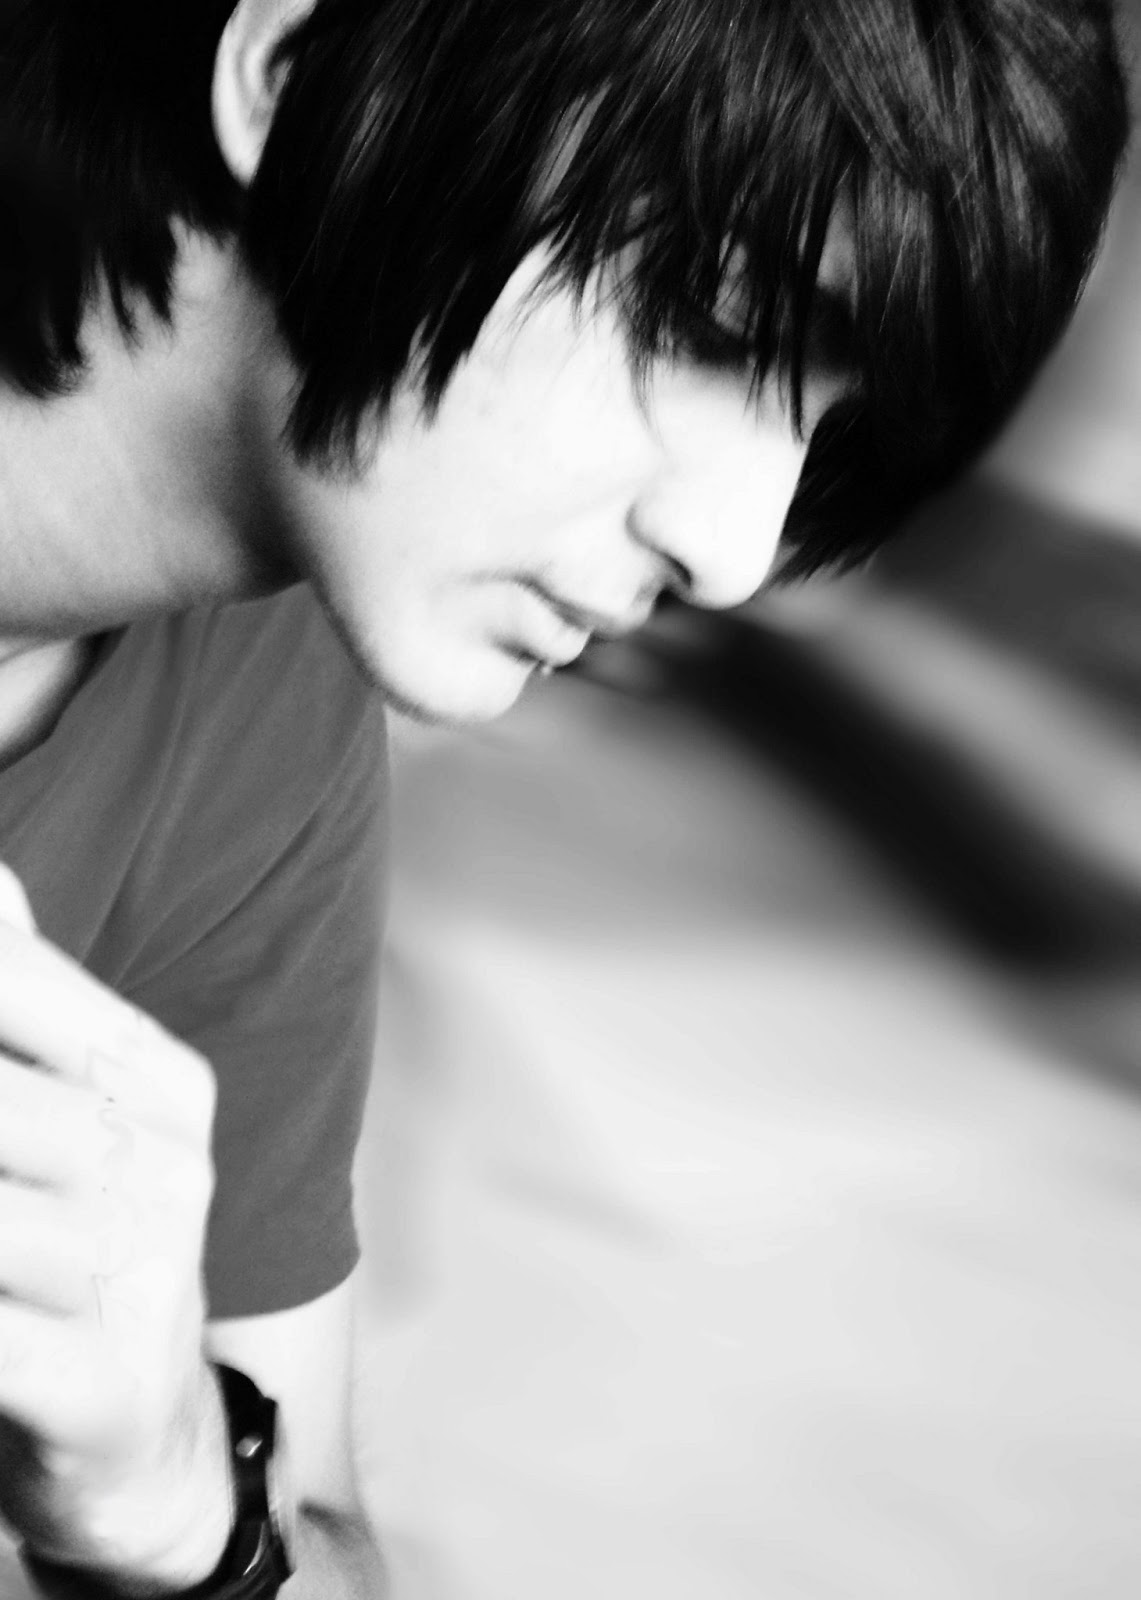 Sad A 17 Year Old Pregnant Girl Commits Suicide In River: Sad Emo HD Wallpapers